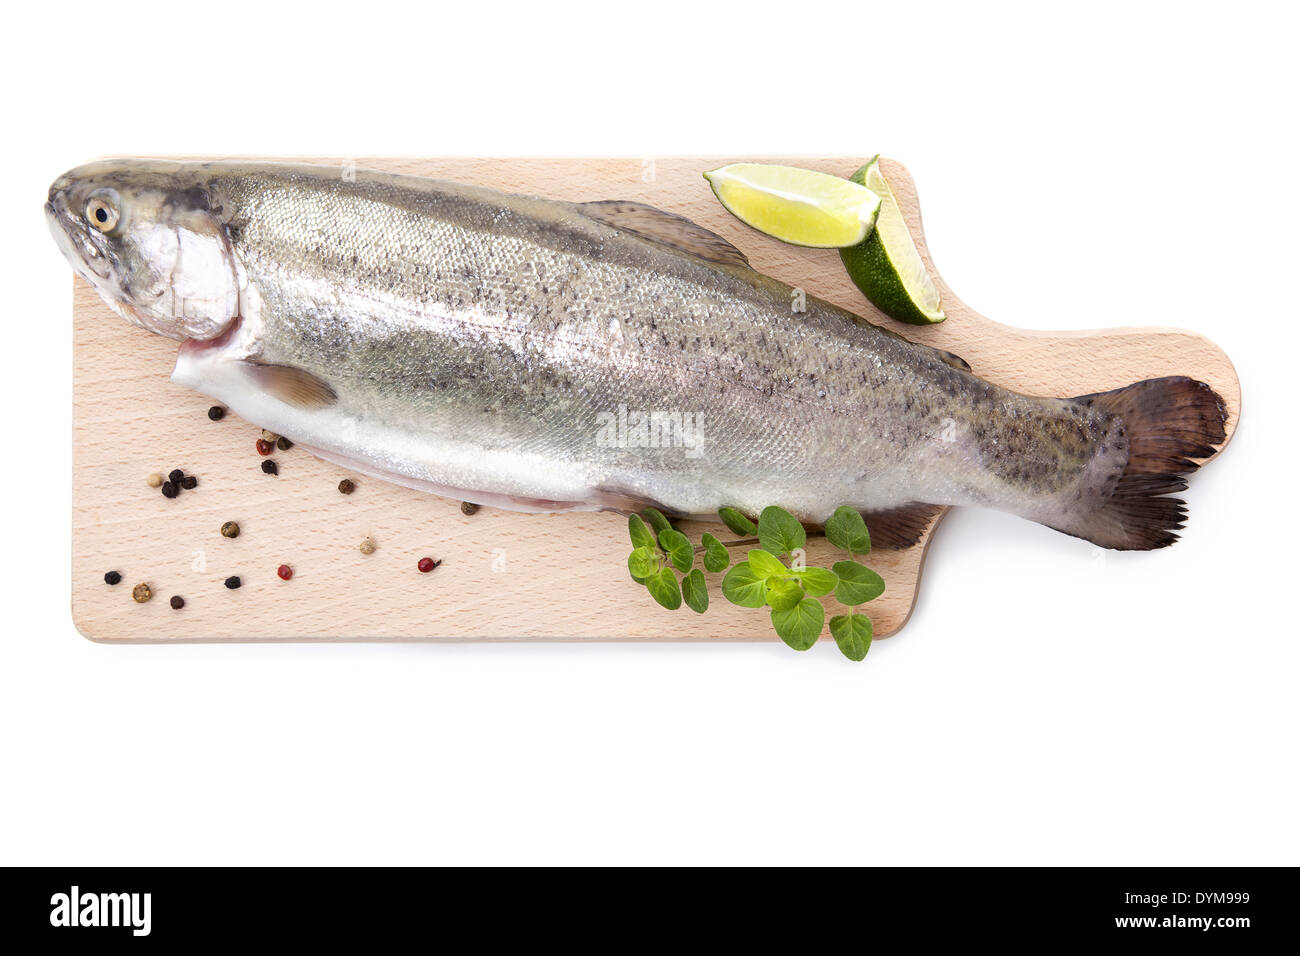 Fresh raw trout with pepper and fresh herbs on wooden cutting board isolated on white background, top view. Culinary - Stock Image